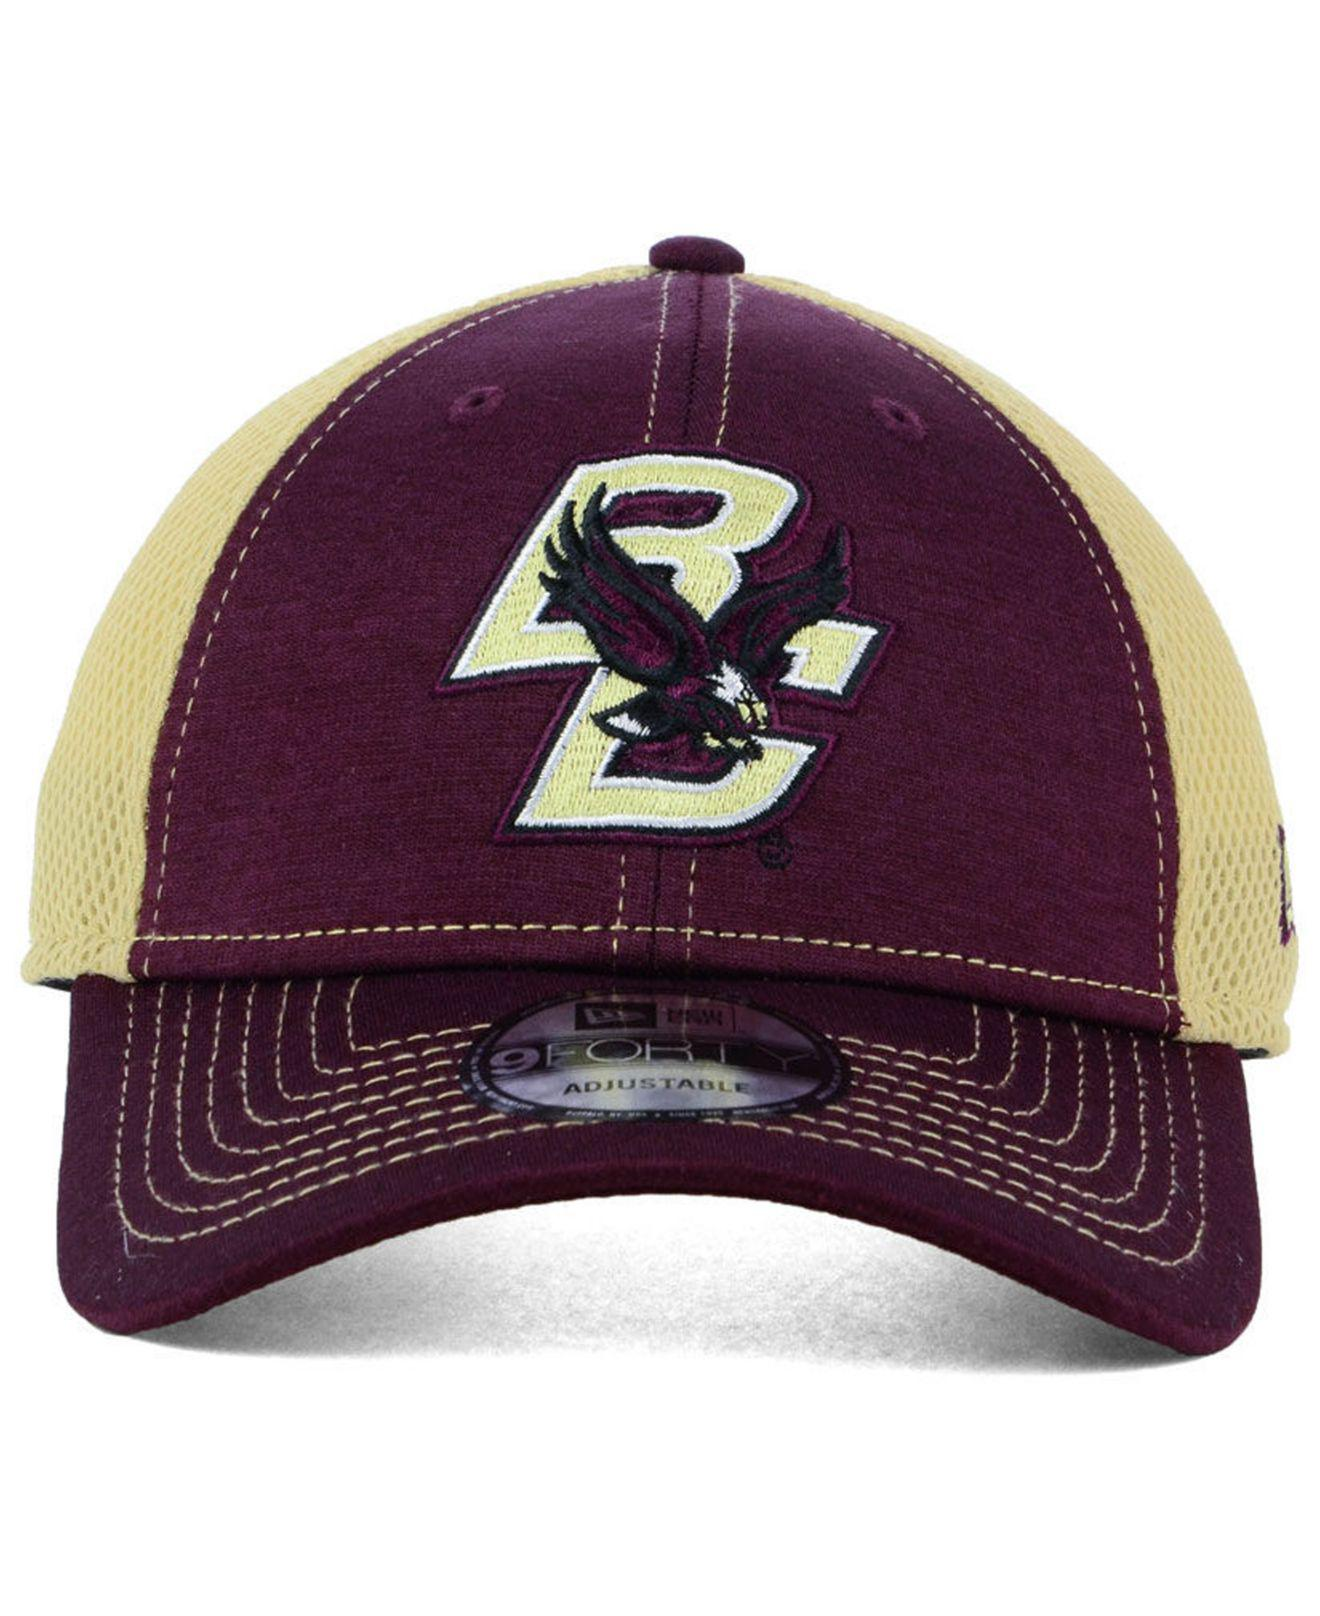 info for b7993 77a3b Lyst - KTZ Boston College Eagles Shadow Turn 9forty Cap in Purple ...